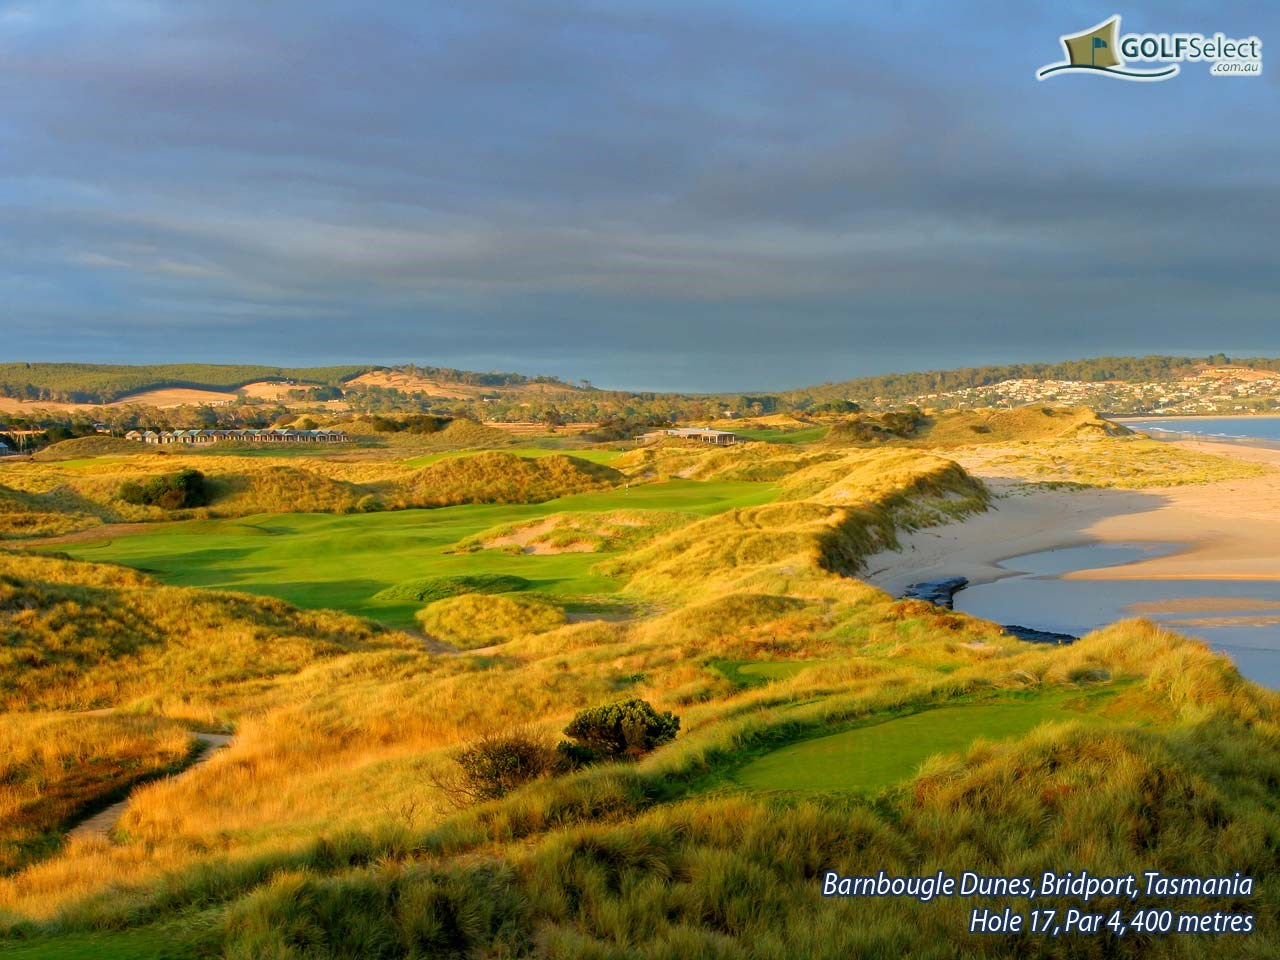 Barnbougle Dunes Golf Links Hole 17, Par 4, 400 metres